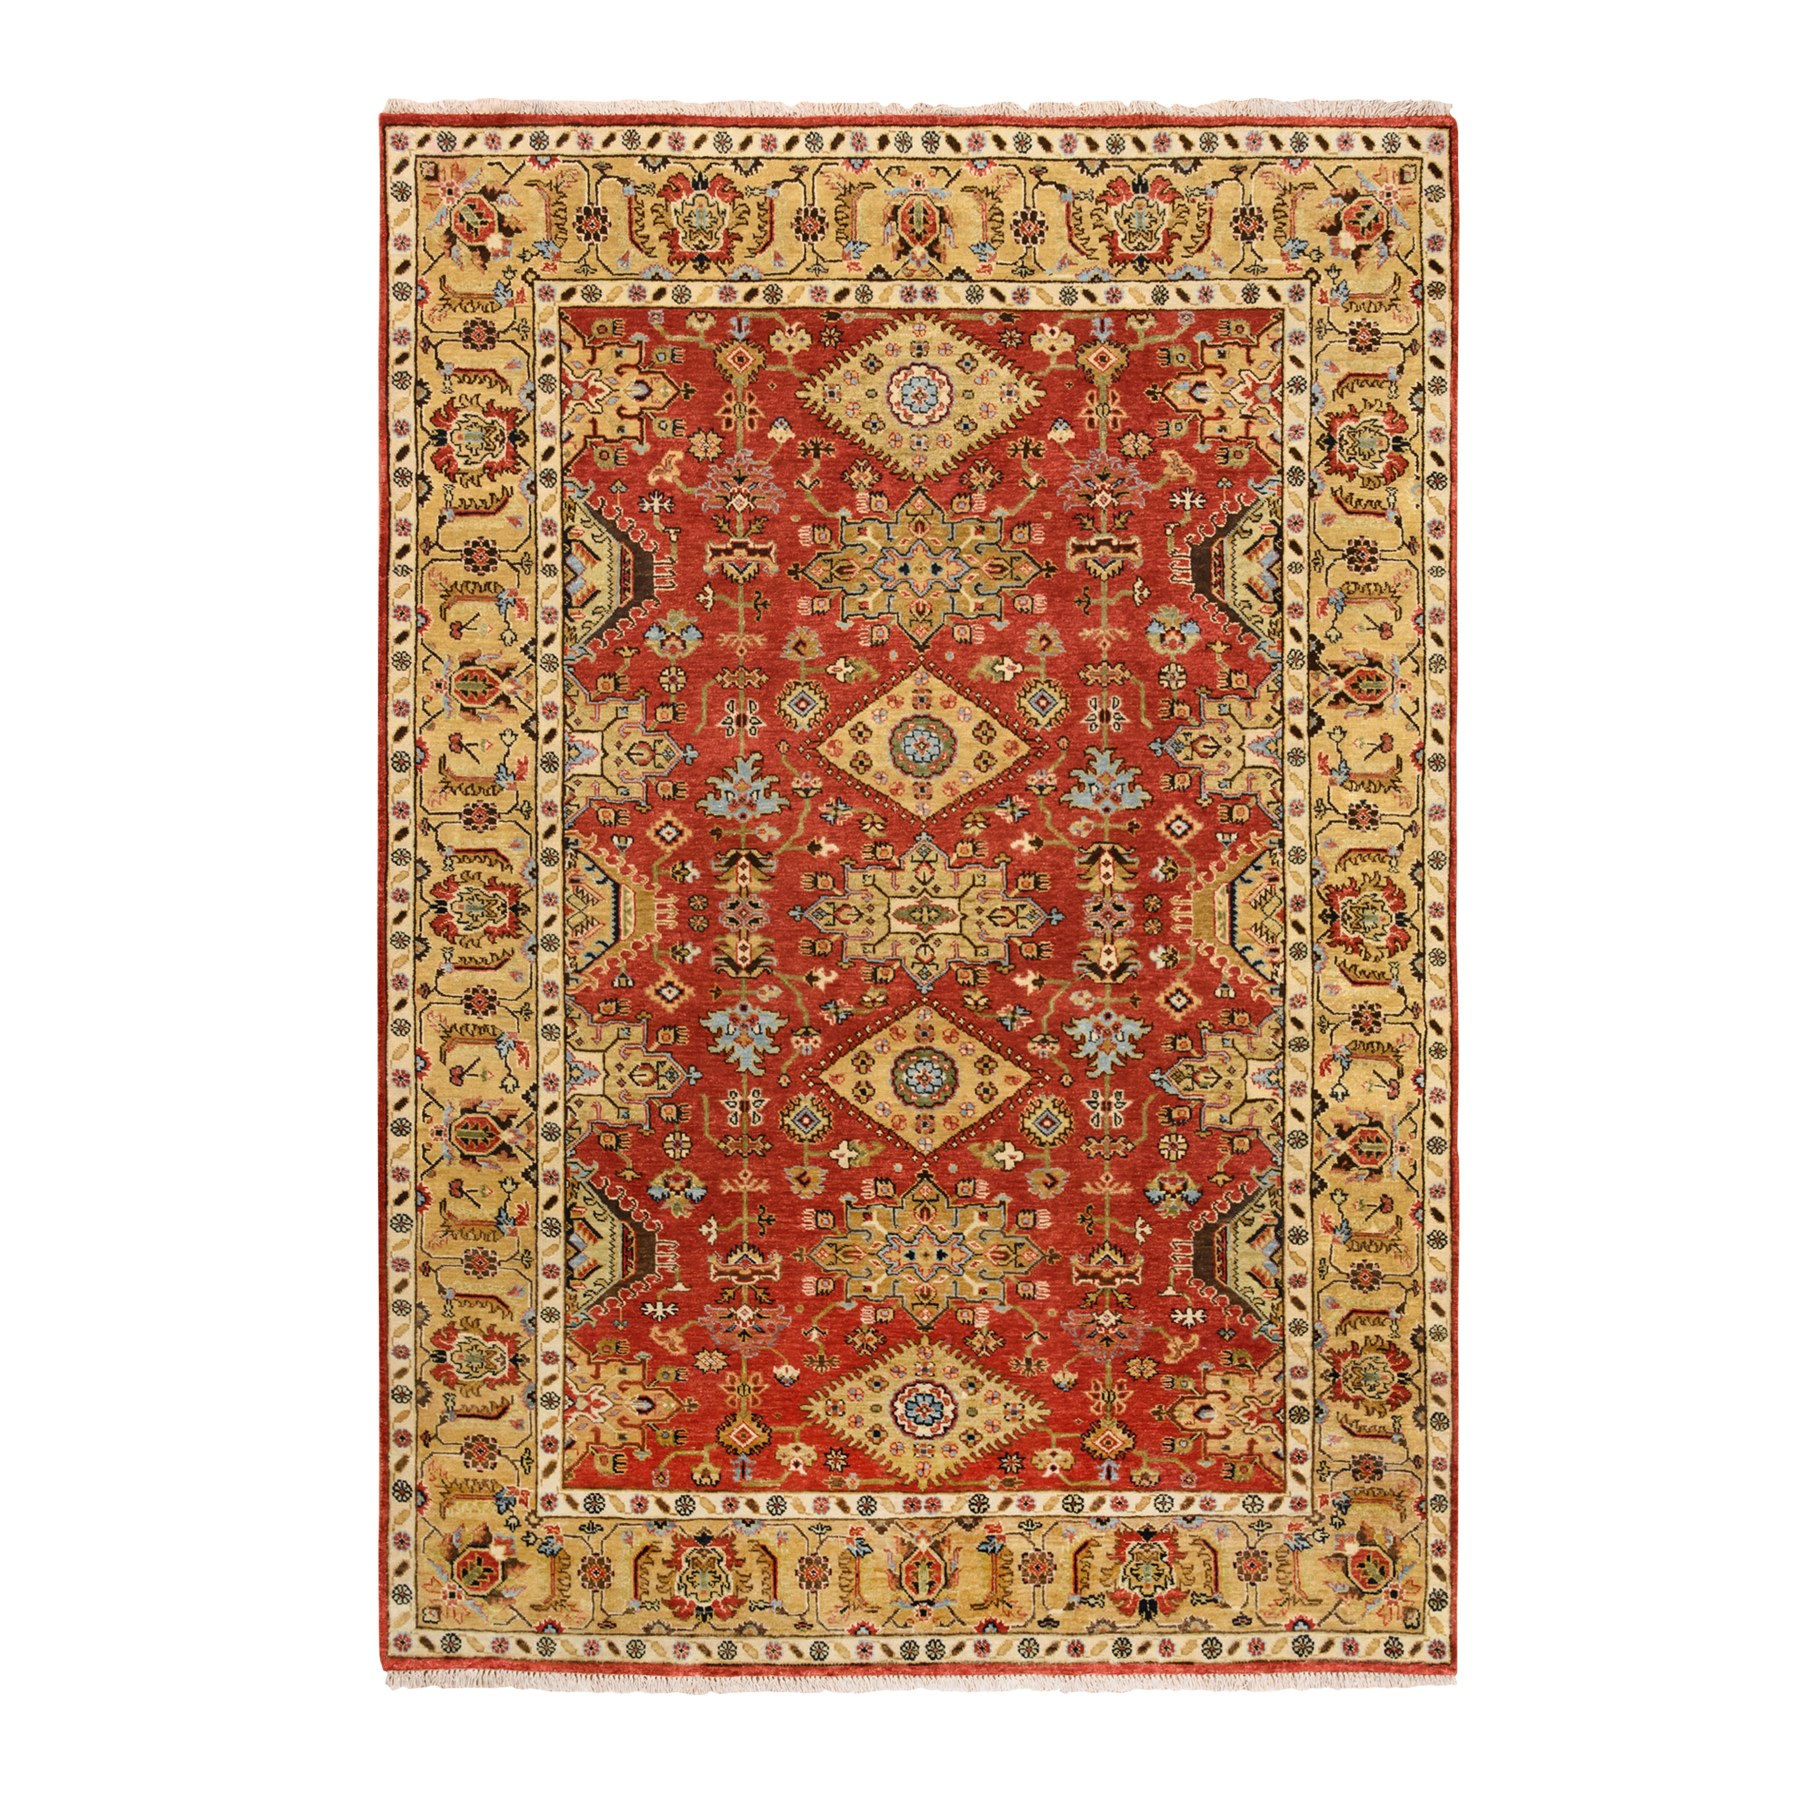 "6'1""x8'10"" Red Karajeh Design Pure Wool Hand Knotted Oriental Rug"